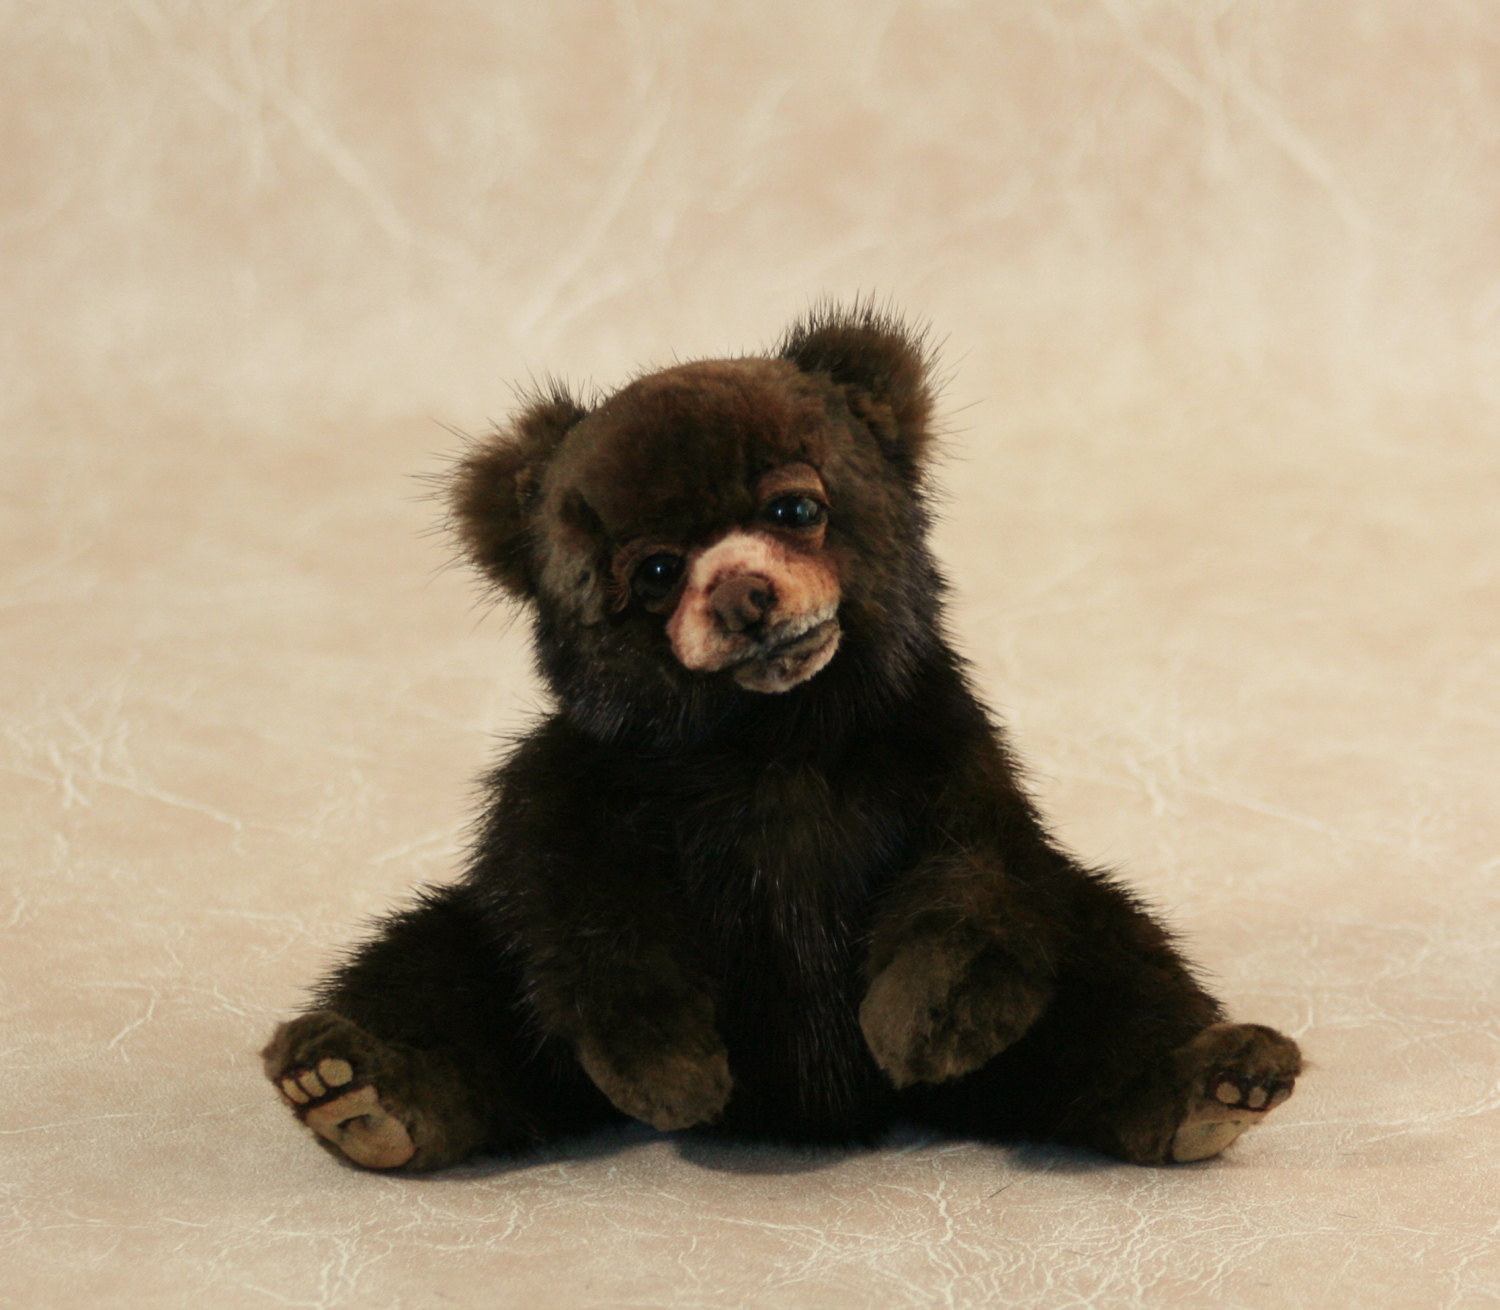 new england bears inc baby bears for sale purchase live baby